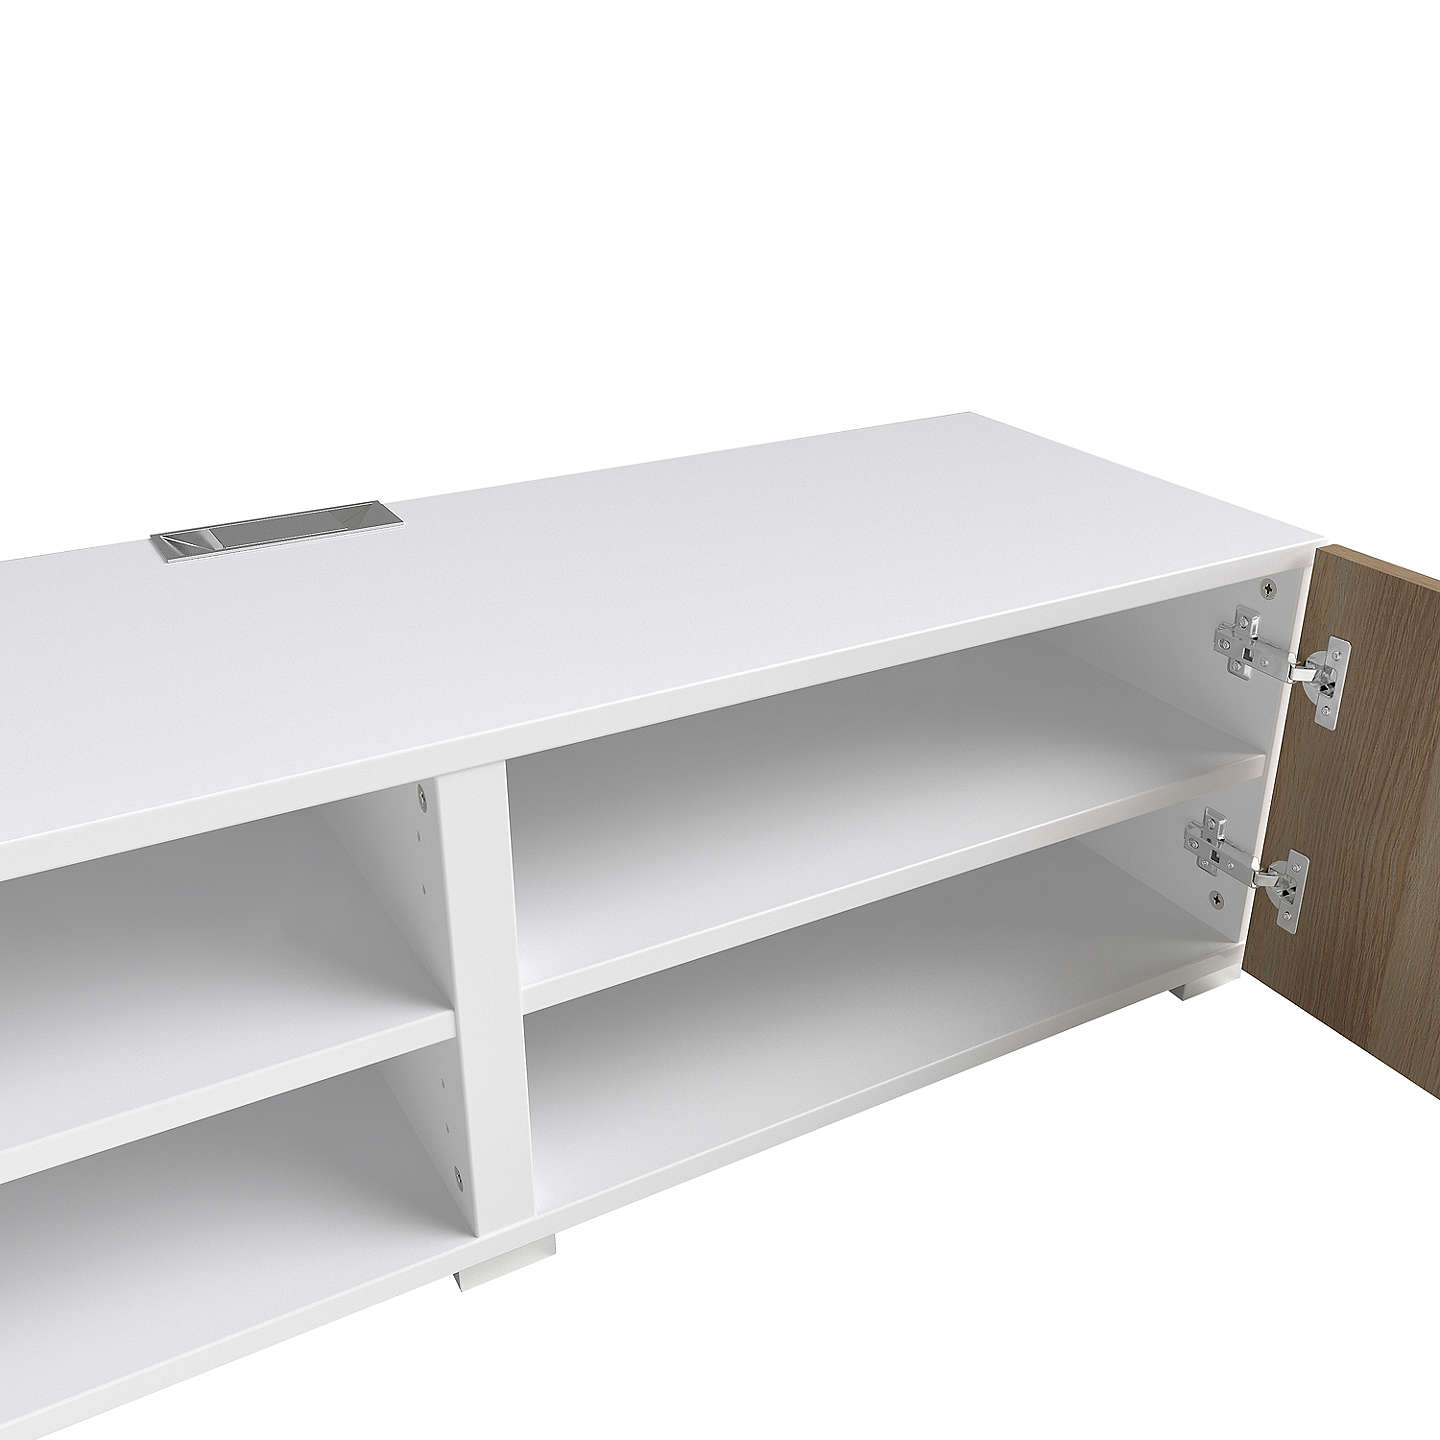 BuyHouse by John Lewis Mix it Media Unit - White frame / Oak doors Online at johnlewis.com